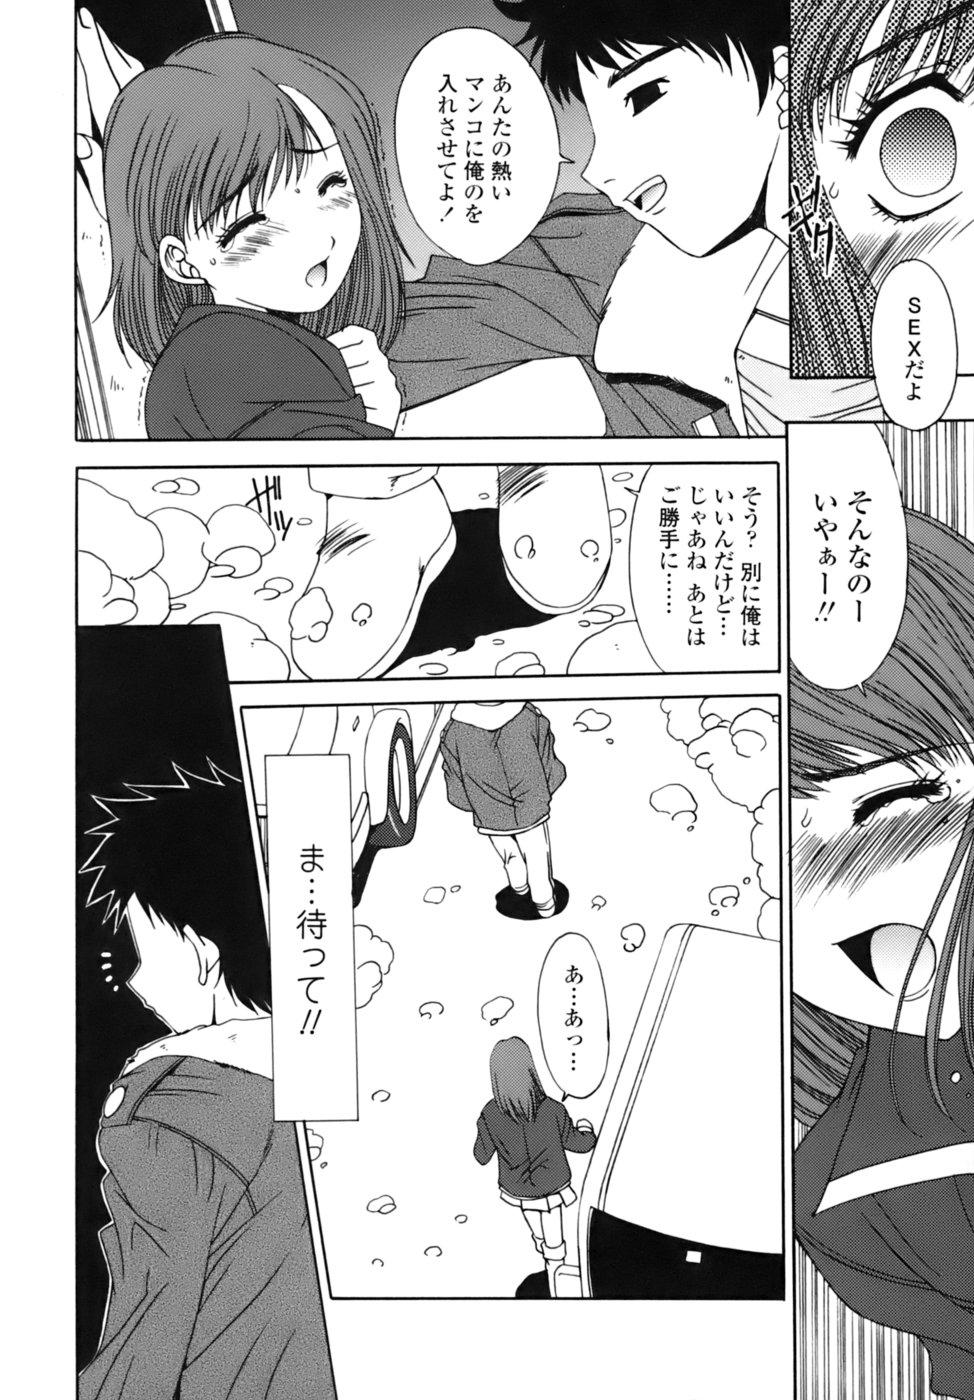 Sange No Koku - At the Time of Scattering Flowers 123